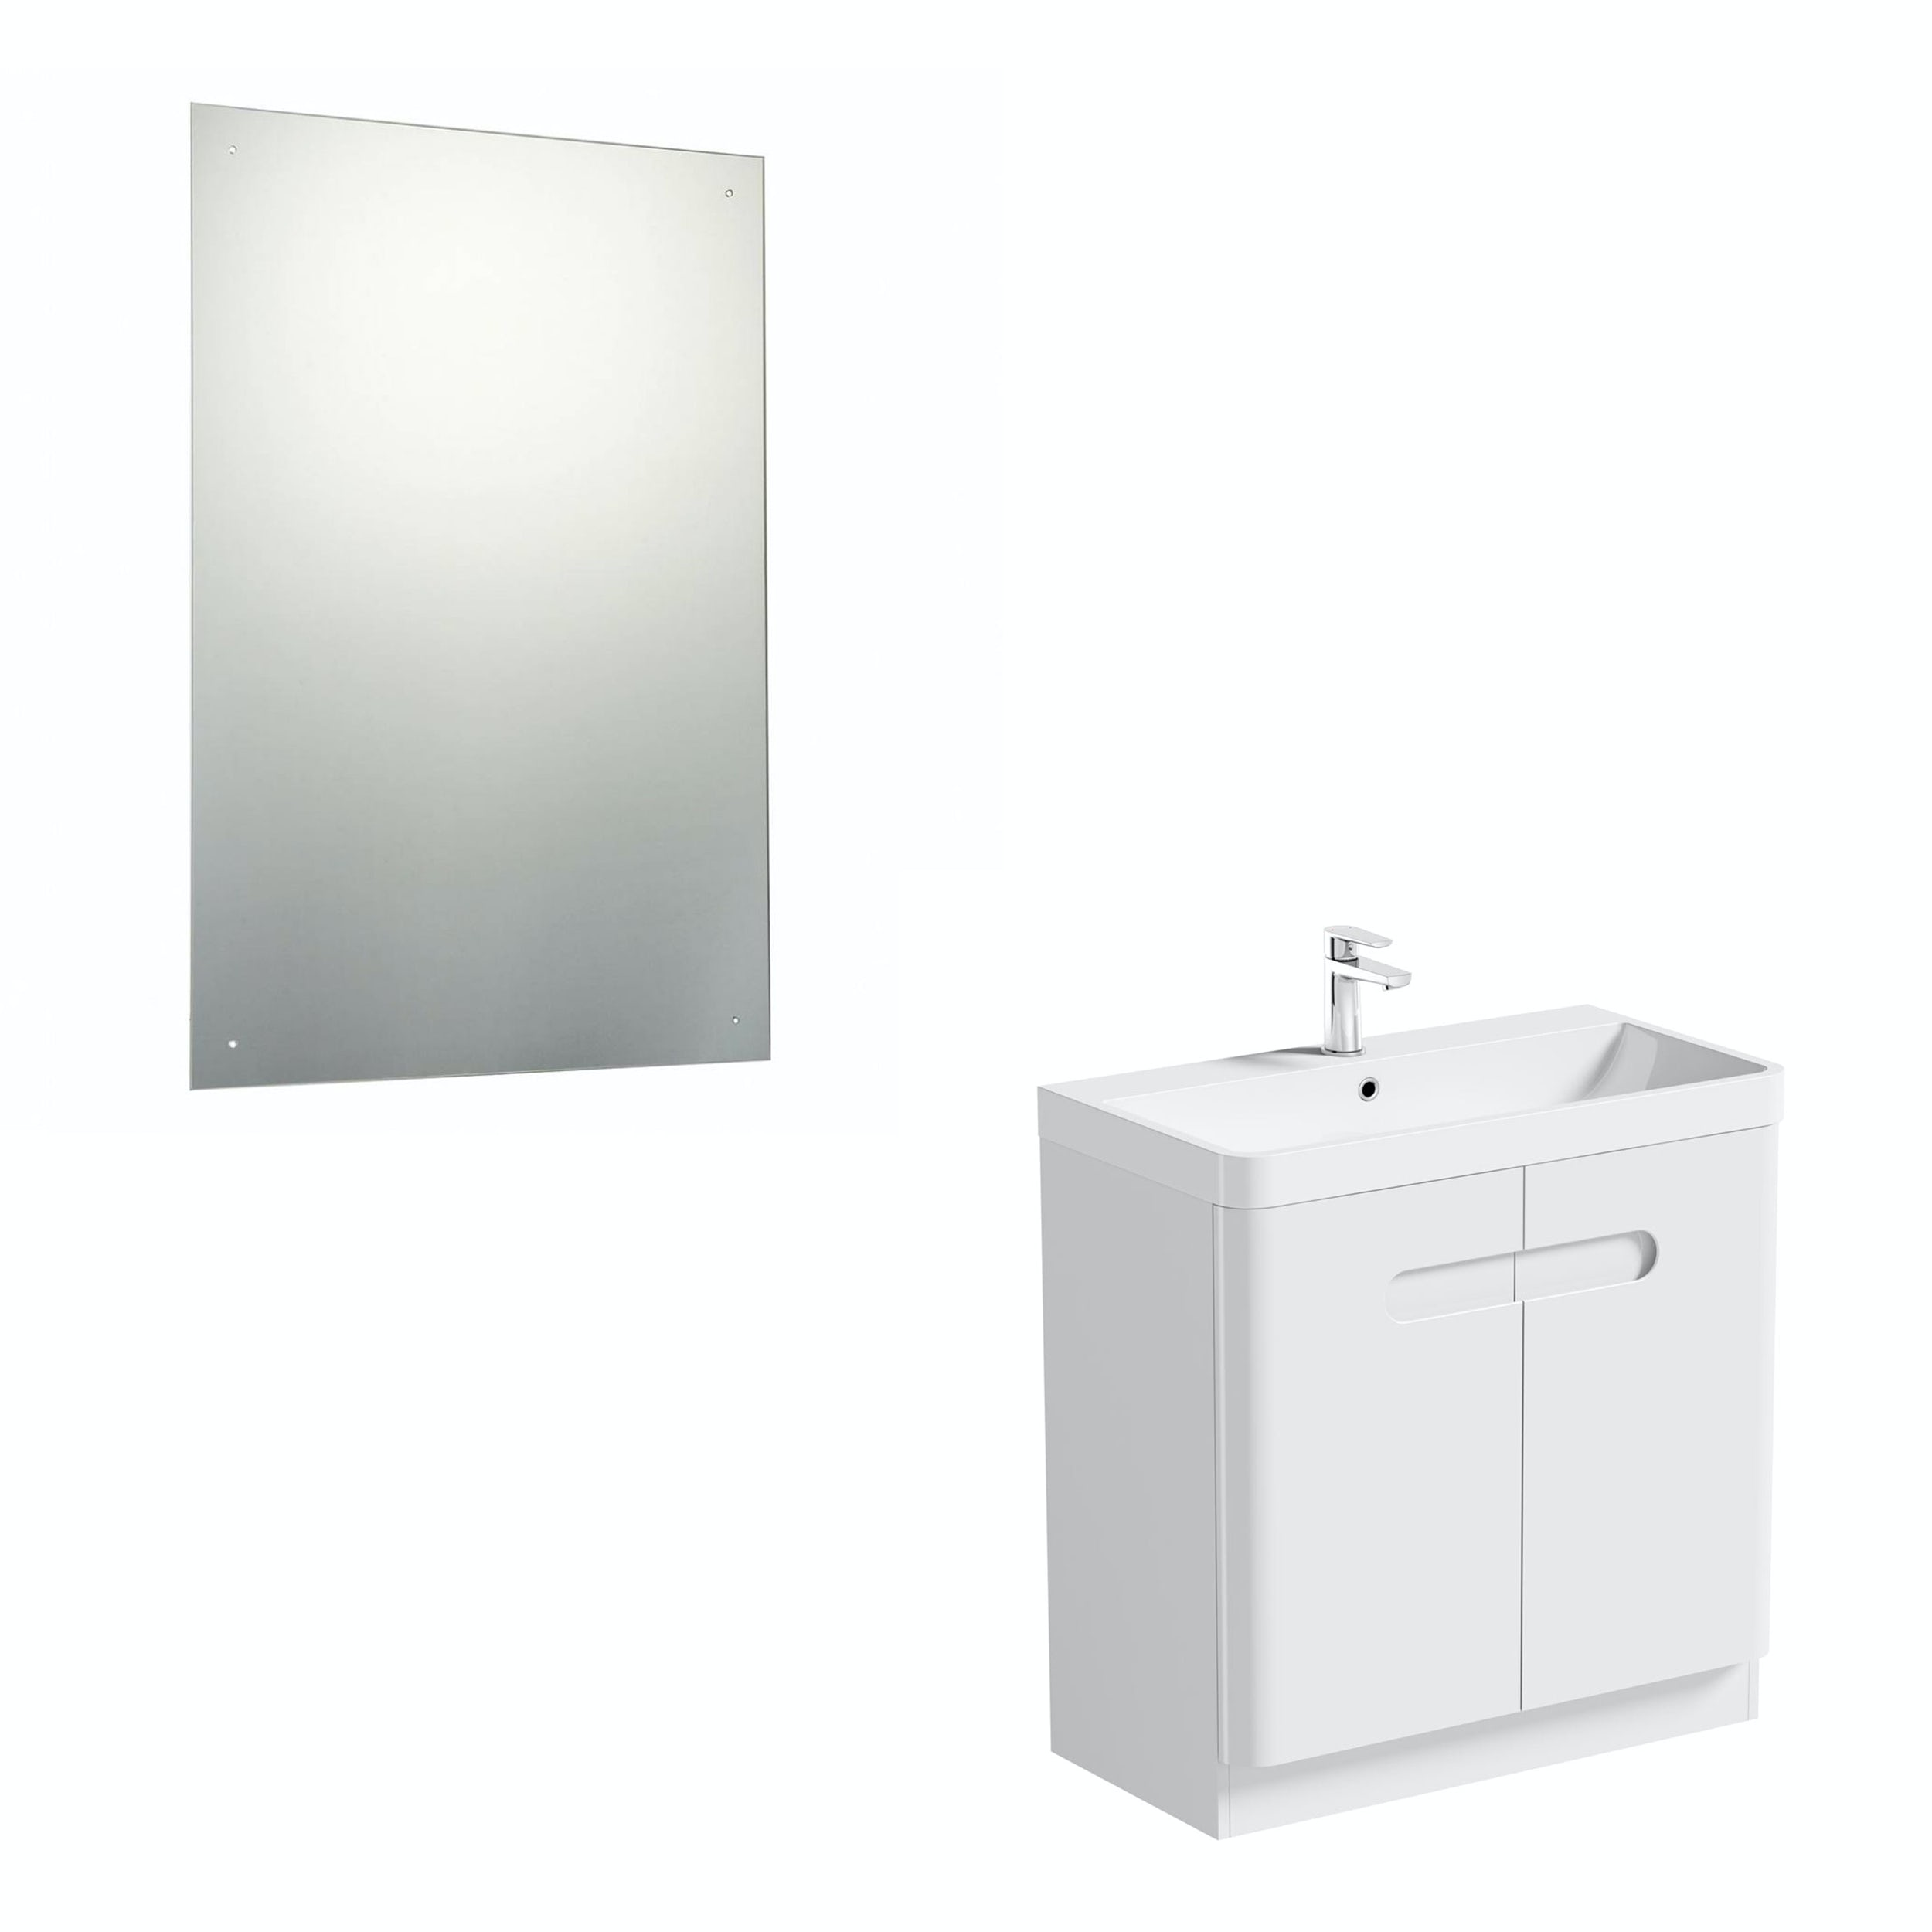 Mode Ellis white vanity door unit 800mm and mirror offer